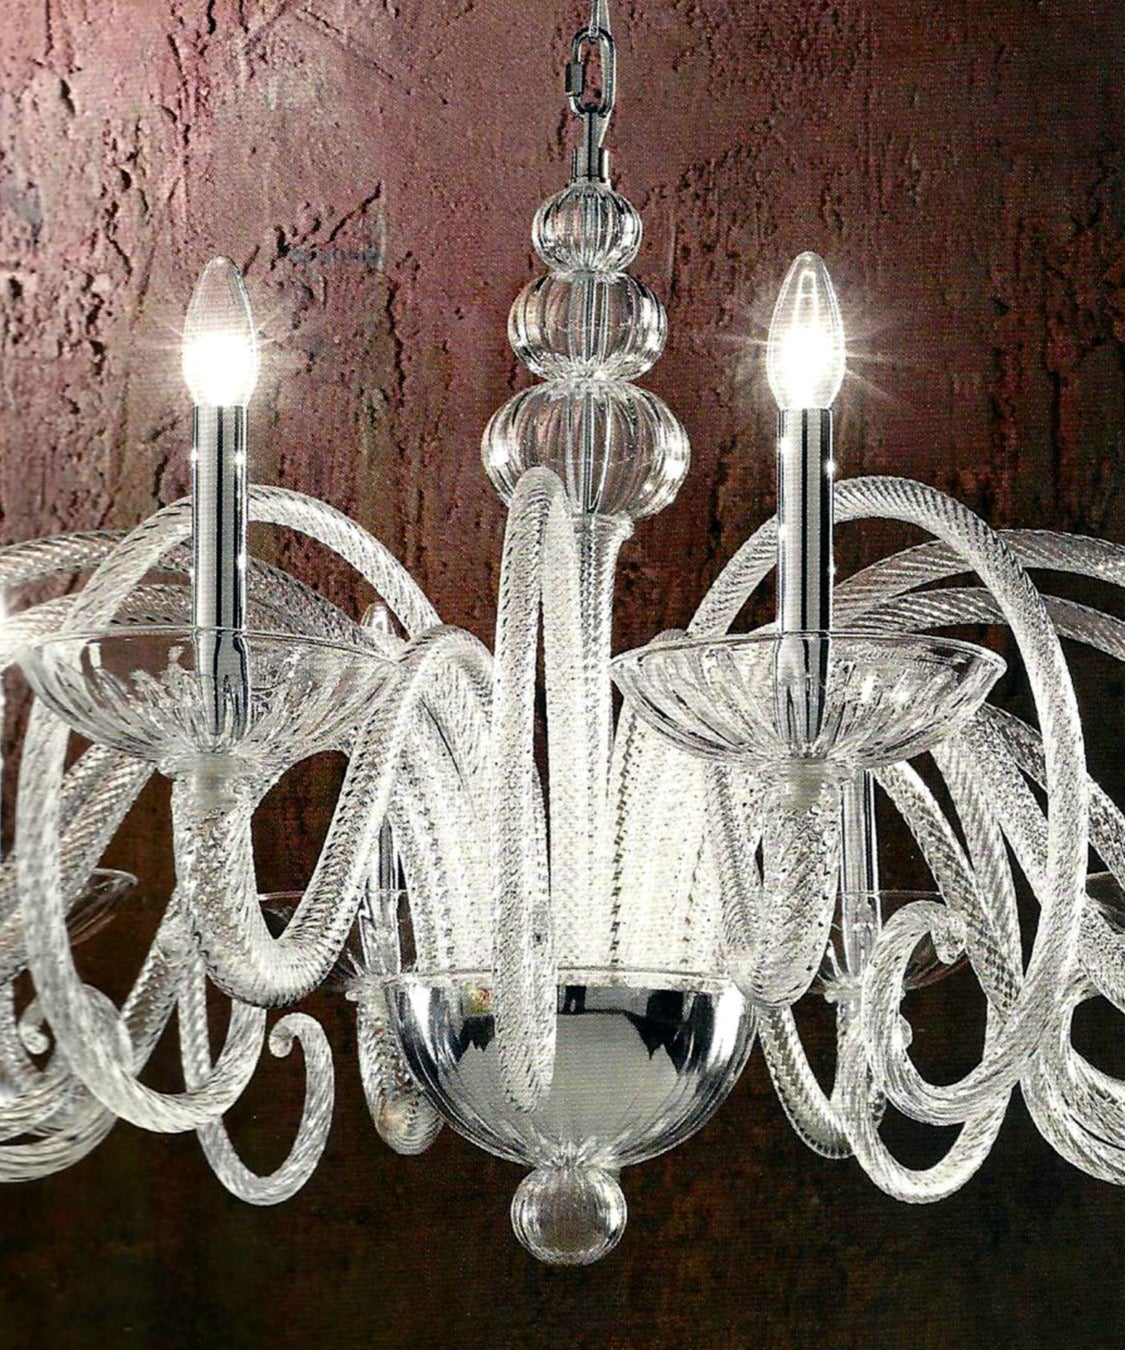 20th Century Large Italian MId-Century Modern Ten-Arm Murano / Venetian  Glass Chandelier For Sale